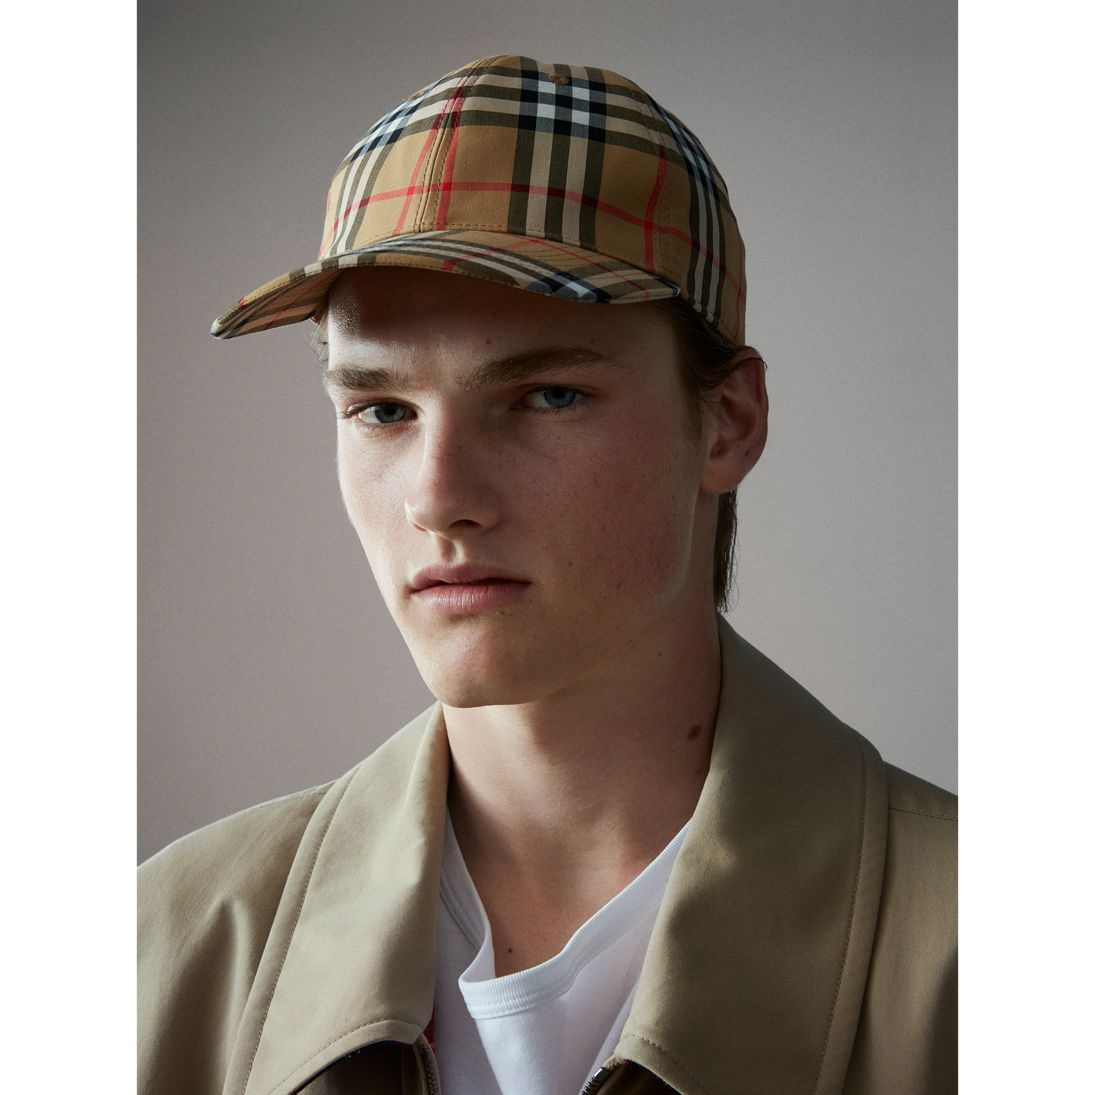 Vintage Check Baseball Cap - Dare me to wear this with the bag and the shoes? I ACCEPT.